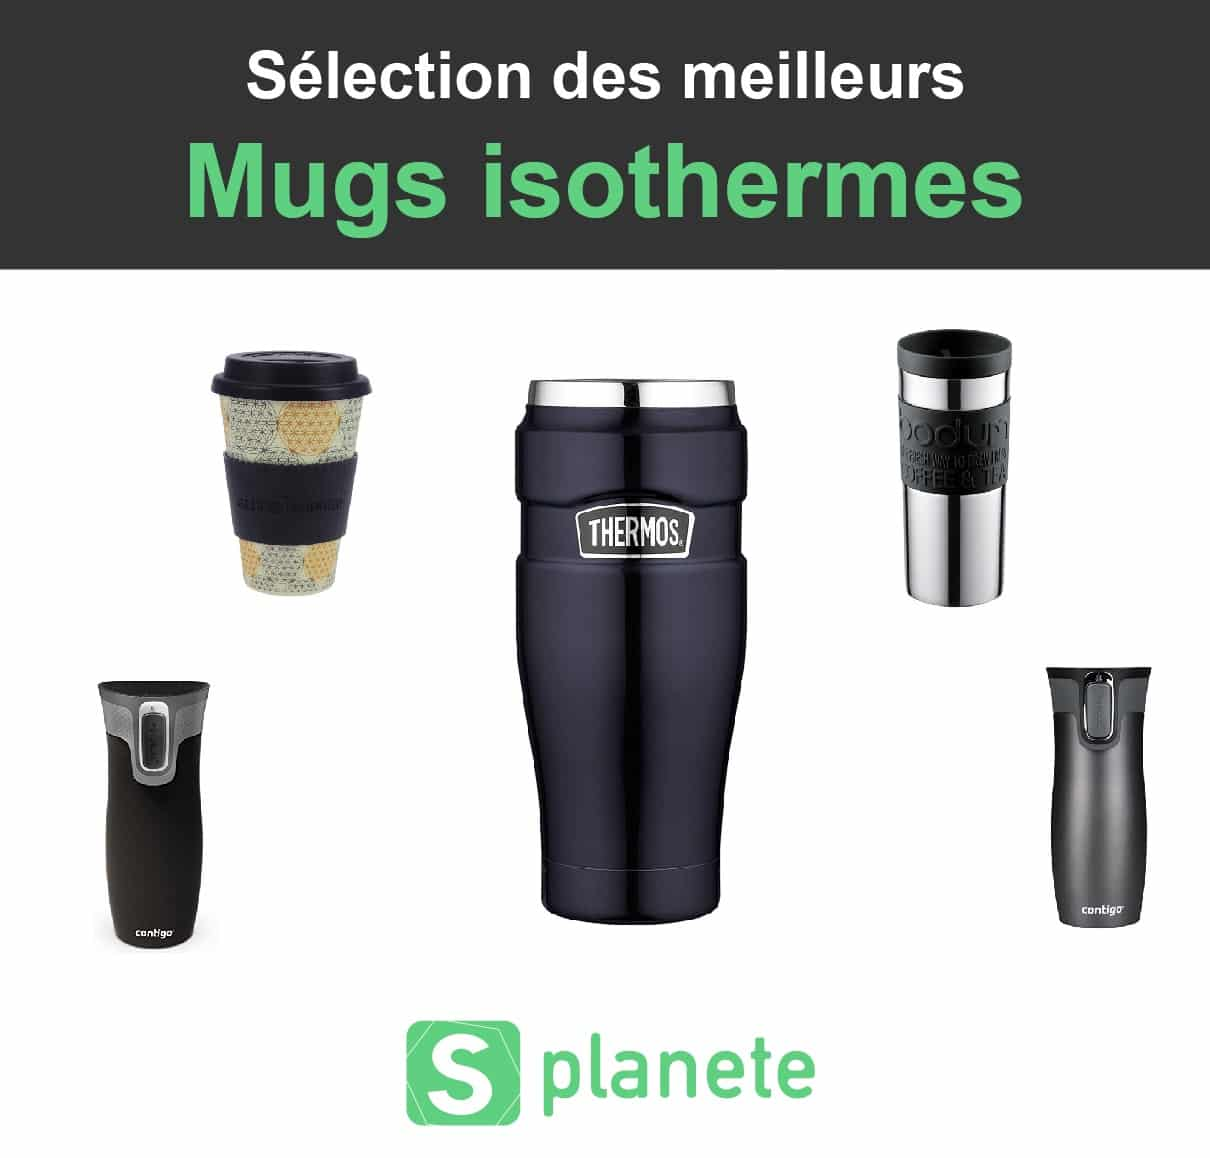 10 meilleurs mugs isothermes – Comparatif & tests 2019